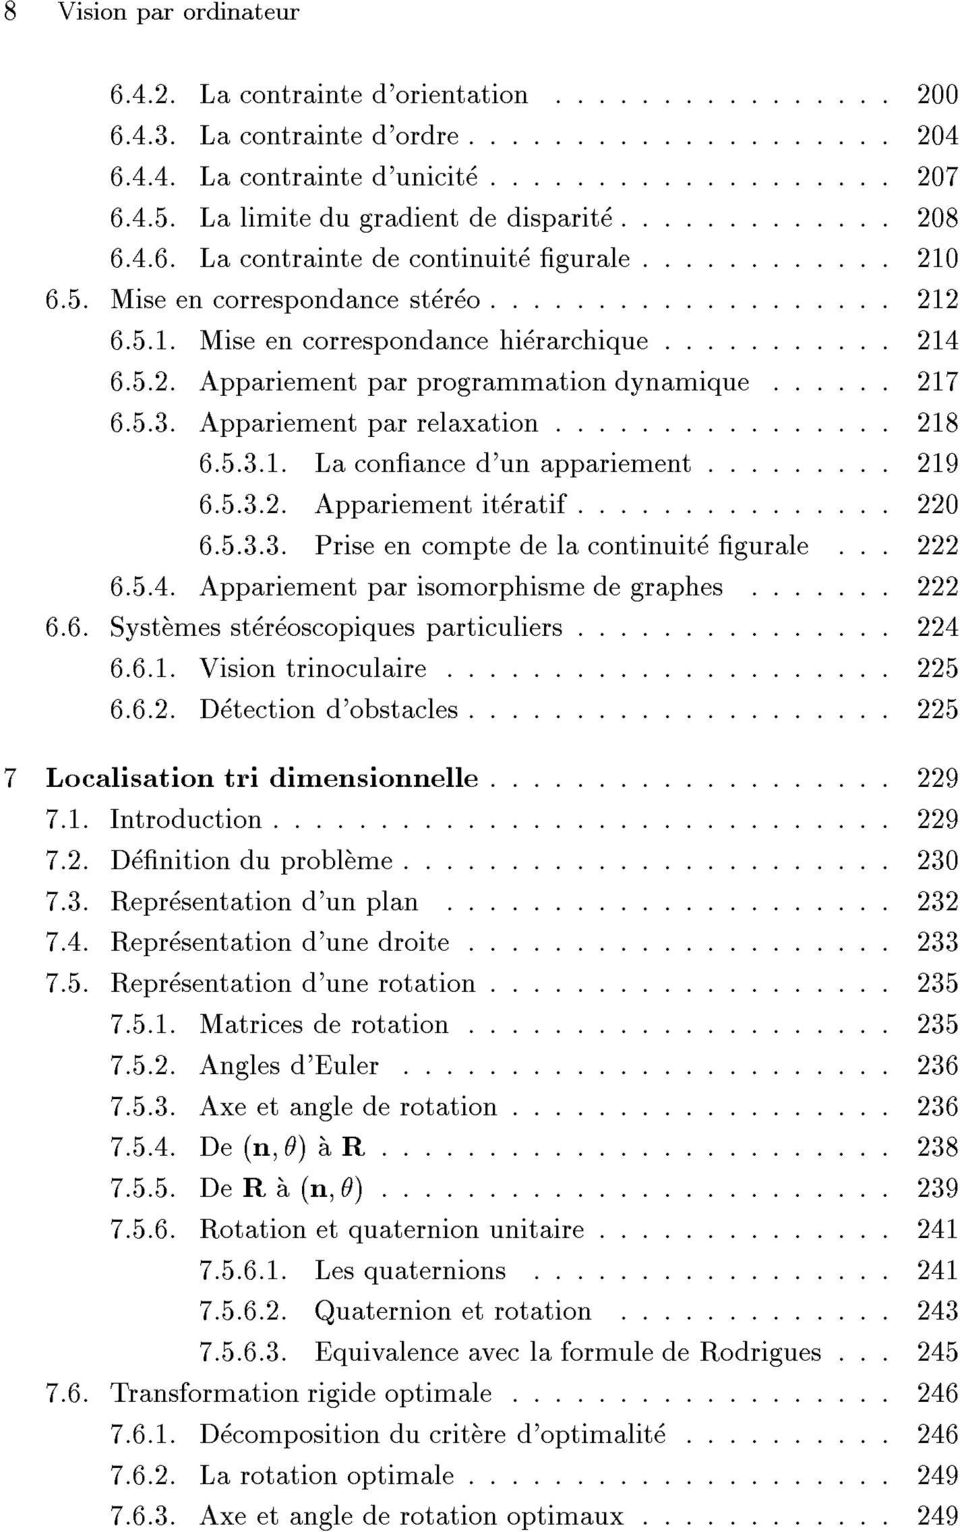 5.2. Appariement par programmation dynamique :::::: 27 6.5.3. Appariement par relaxation :::::::::::::::: 28 6.5.3.. La conance d'un appariement ::::::::: 29 6.5.3.2. Appariement iteratif ::::::::::::::: 220 6.